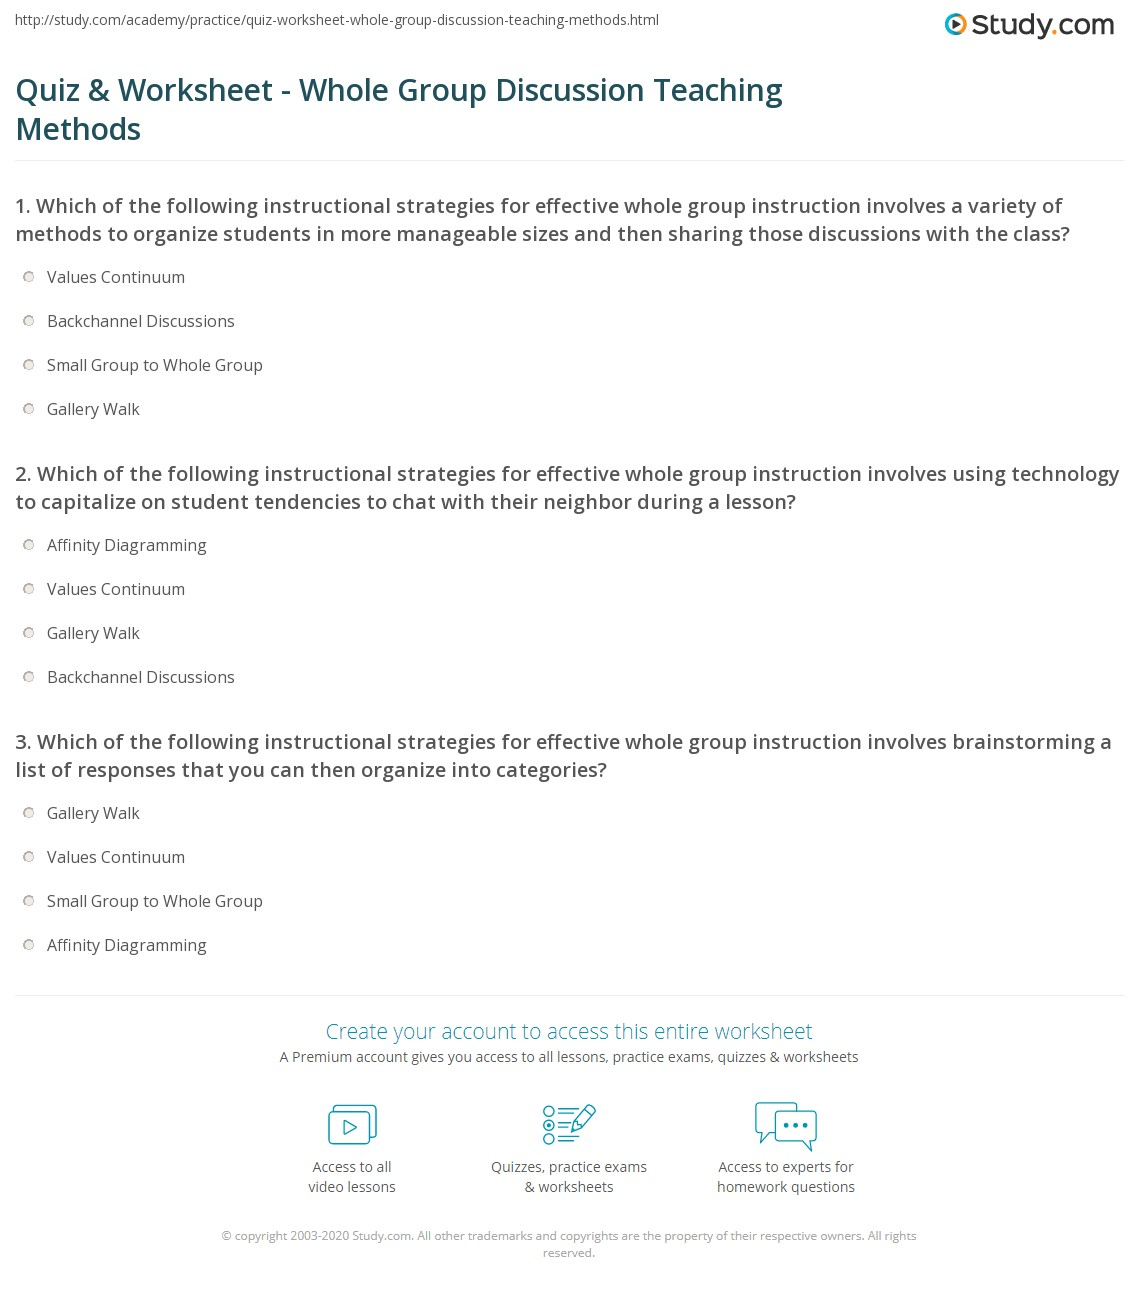 Quiz & Worksheet - Whole Group Discussion Teaching Methods | Study com